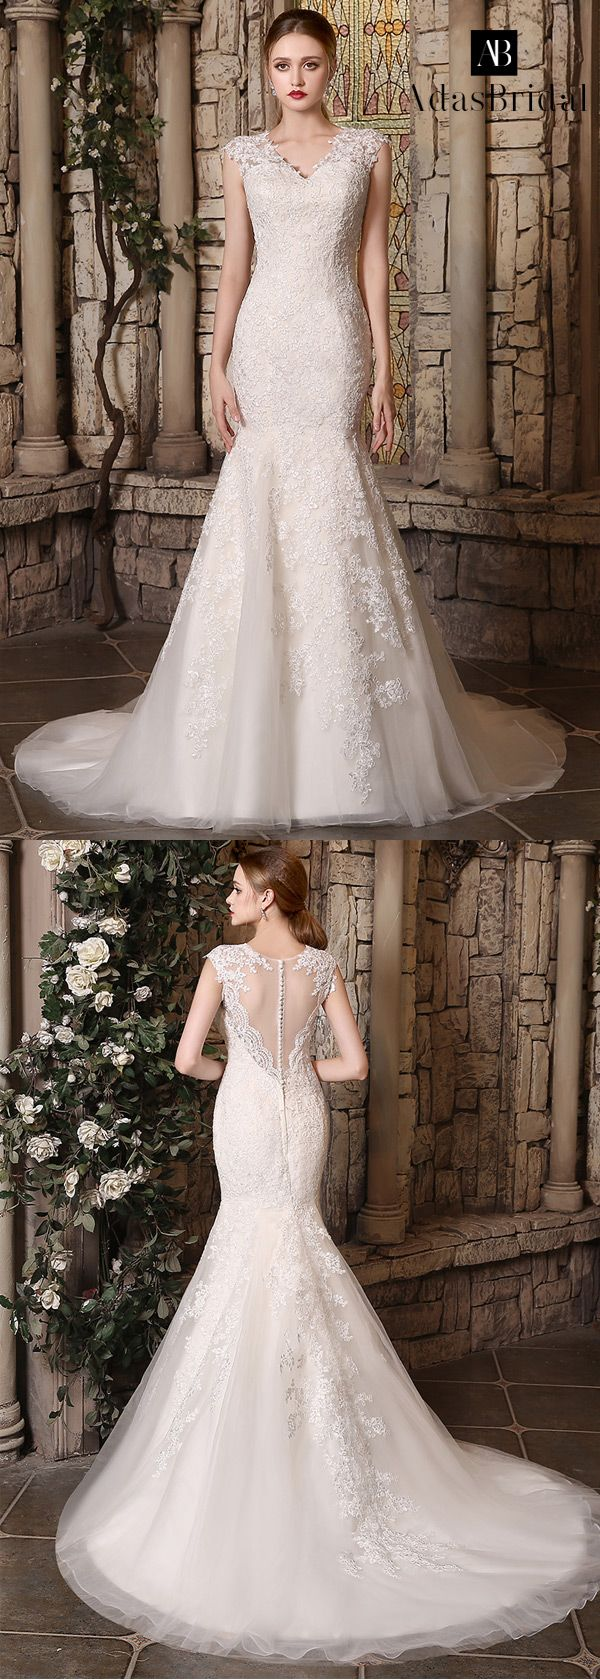 Wedding dresses v neck  Romantic tulle vneck neckline lace appliques mermaid wedding